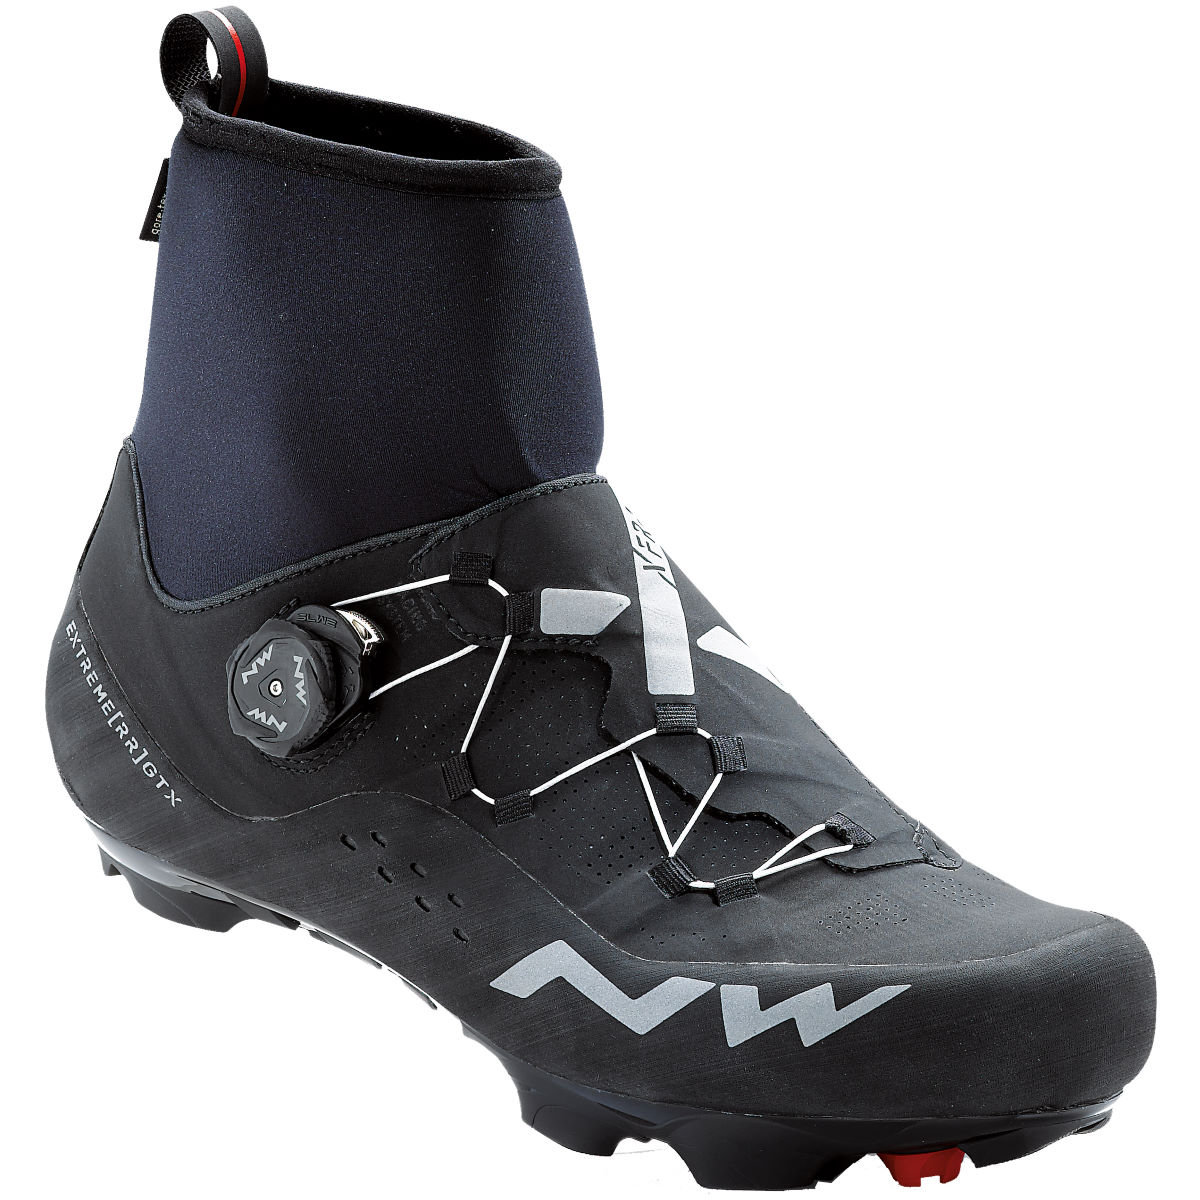 Chaussures montantes Northwave Extreme XC Winter GTX - 40 Noir